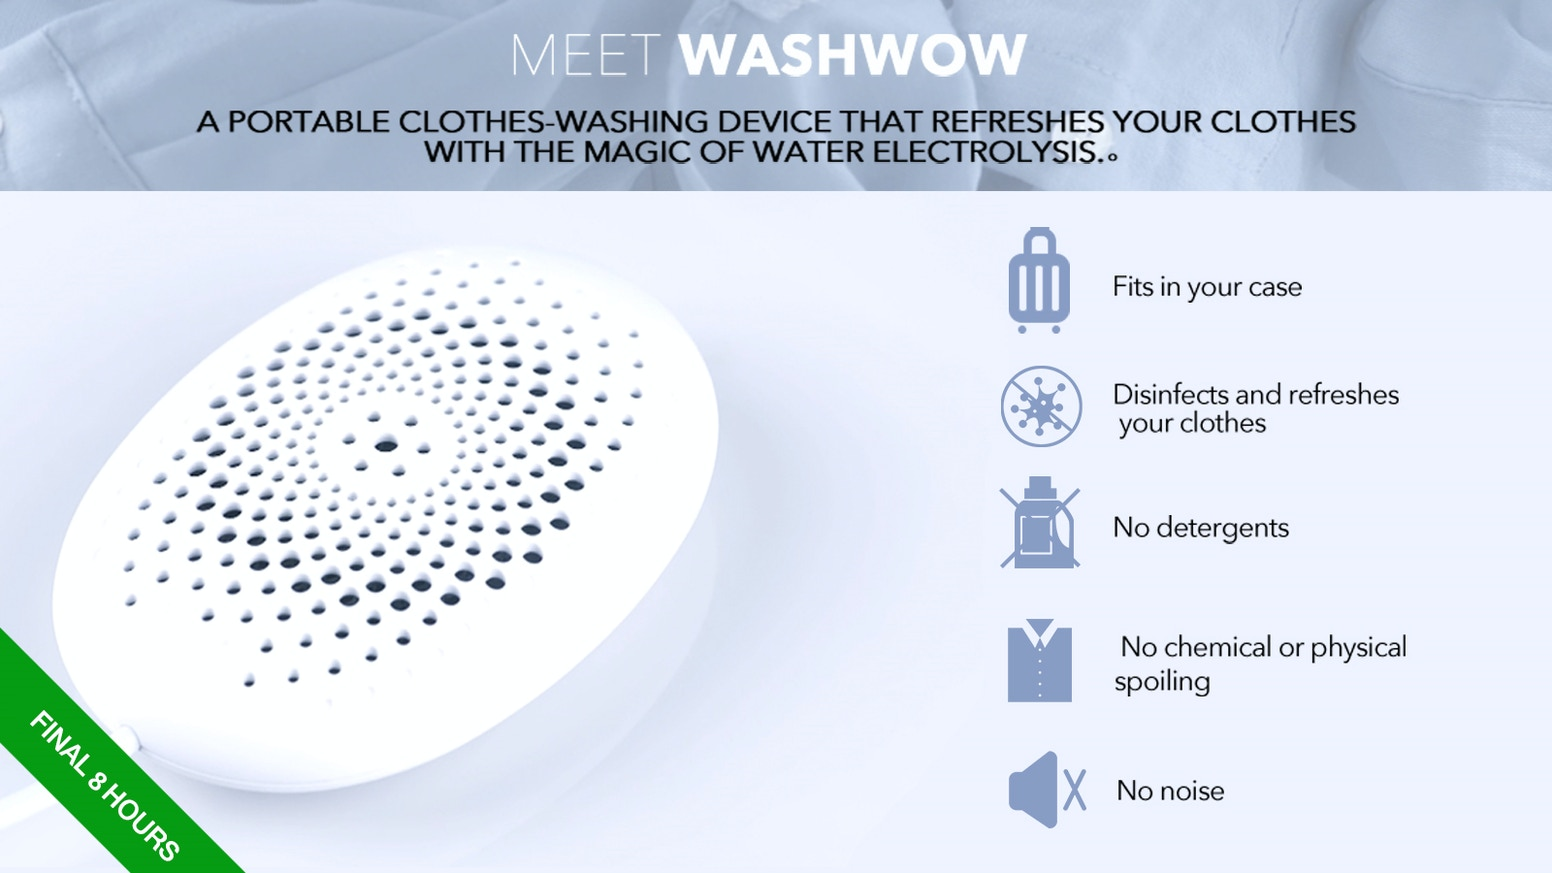 WASHWOW: A clothes-washing device adopting the magic of water electrolysis starting from $69 with 30% off  ONLY on Kickstarter.